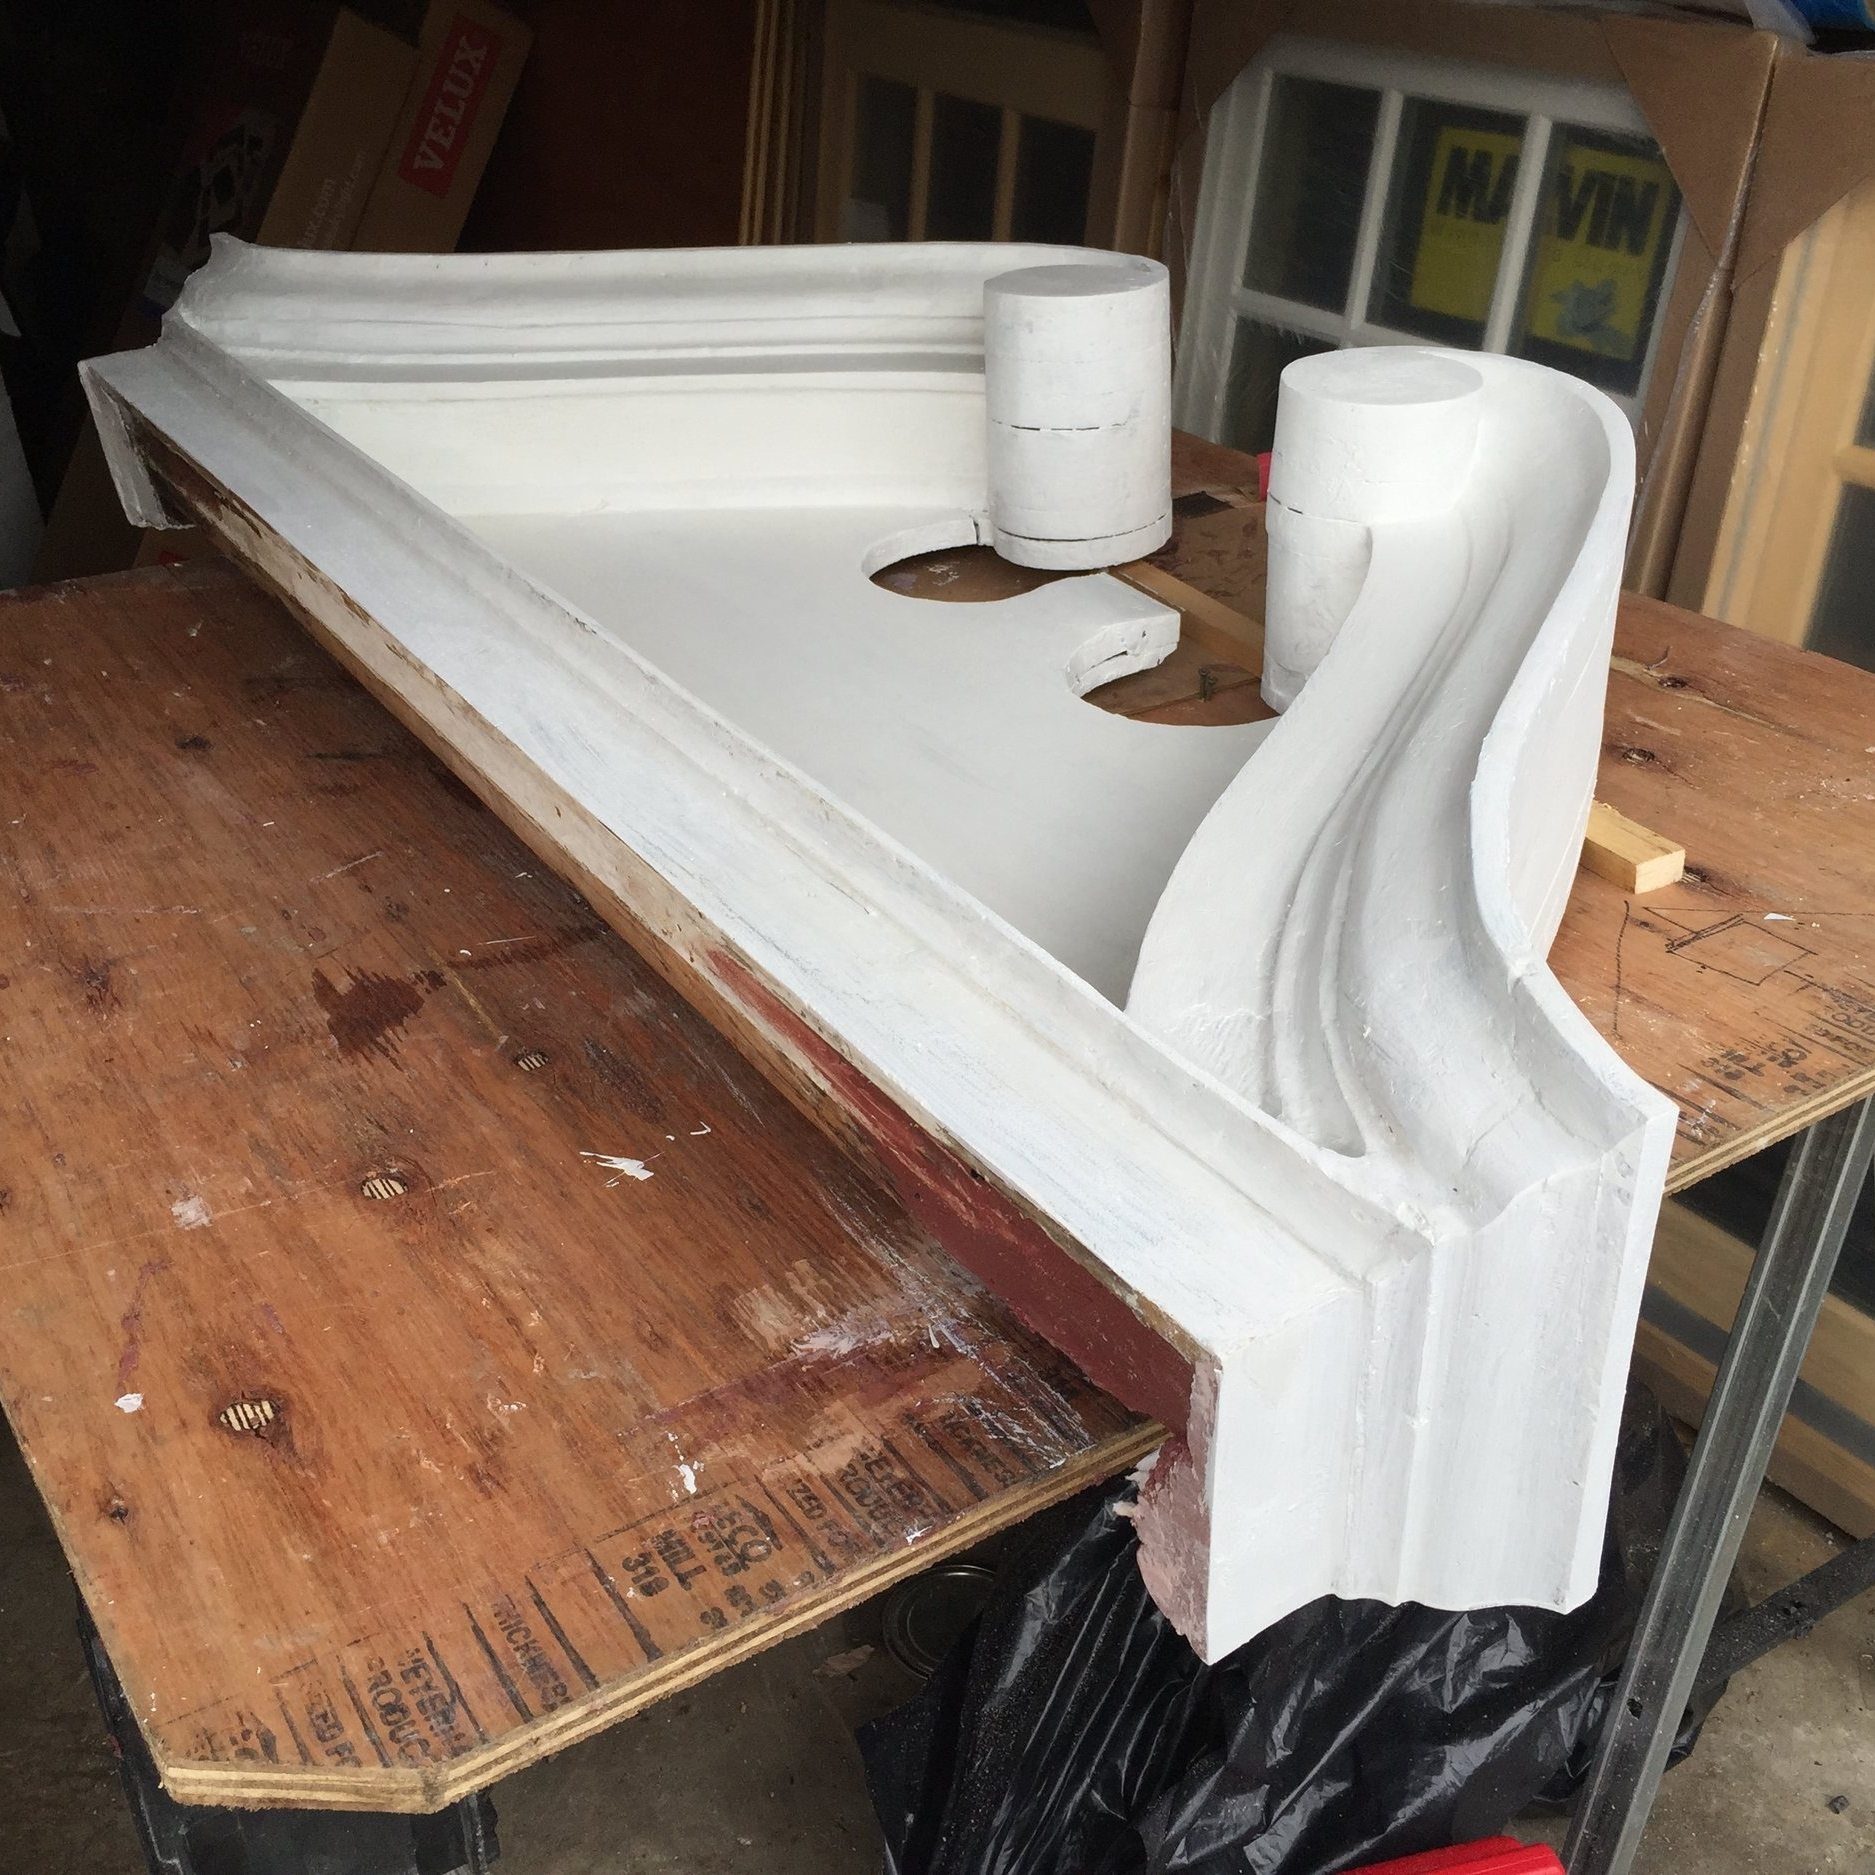 Believe it or not, this historic midcentury pediment was once completely rotted through, after its tin capping had become pitted over time. However, instead of replacing it in kind, we used a proprietary wood conservation epoxy / consolidant to strengthen the remaining wood grains and fill in the numerous voids.